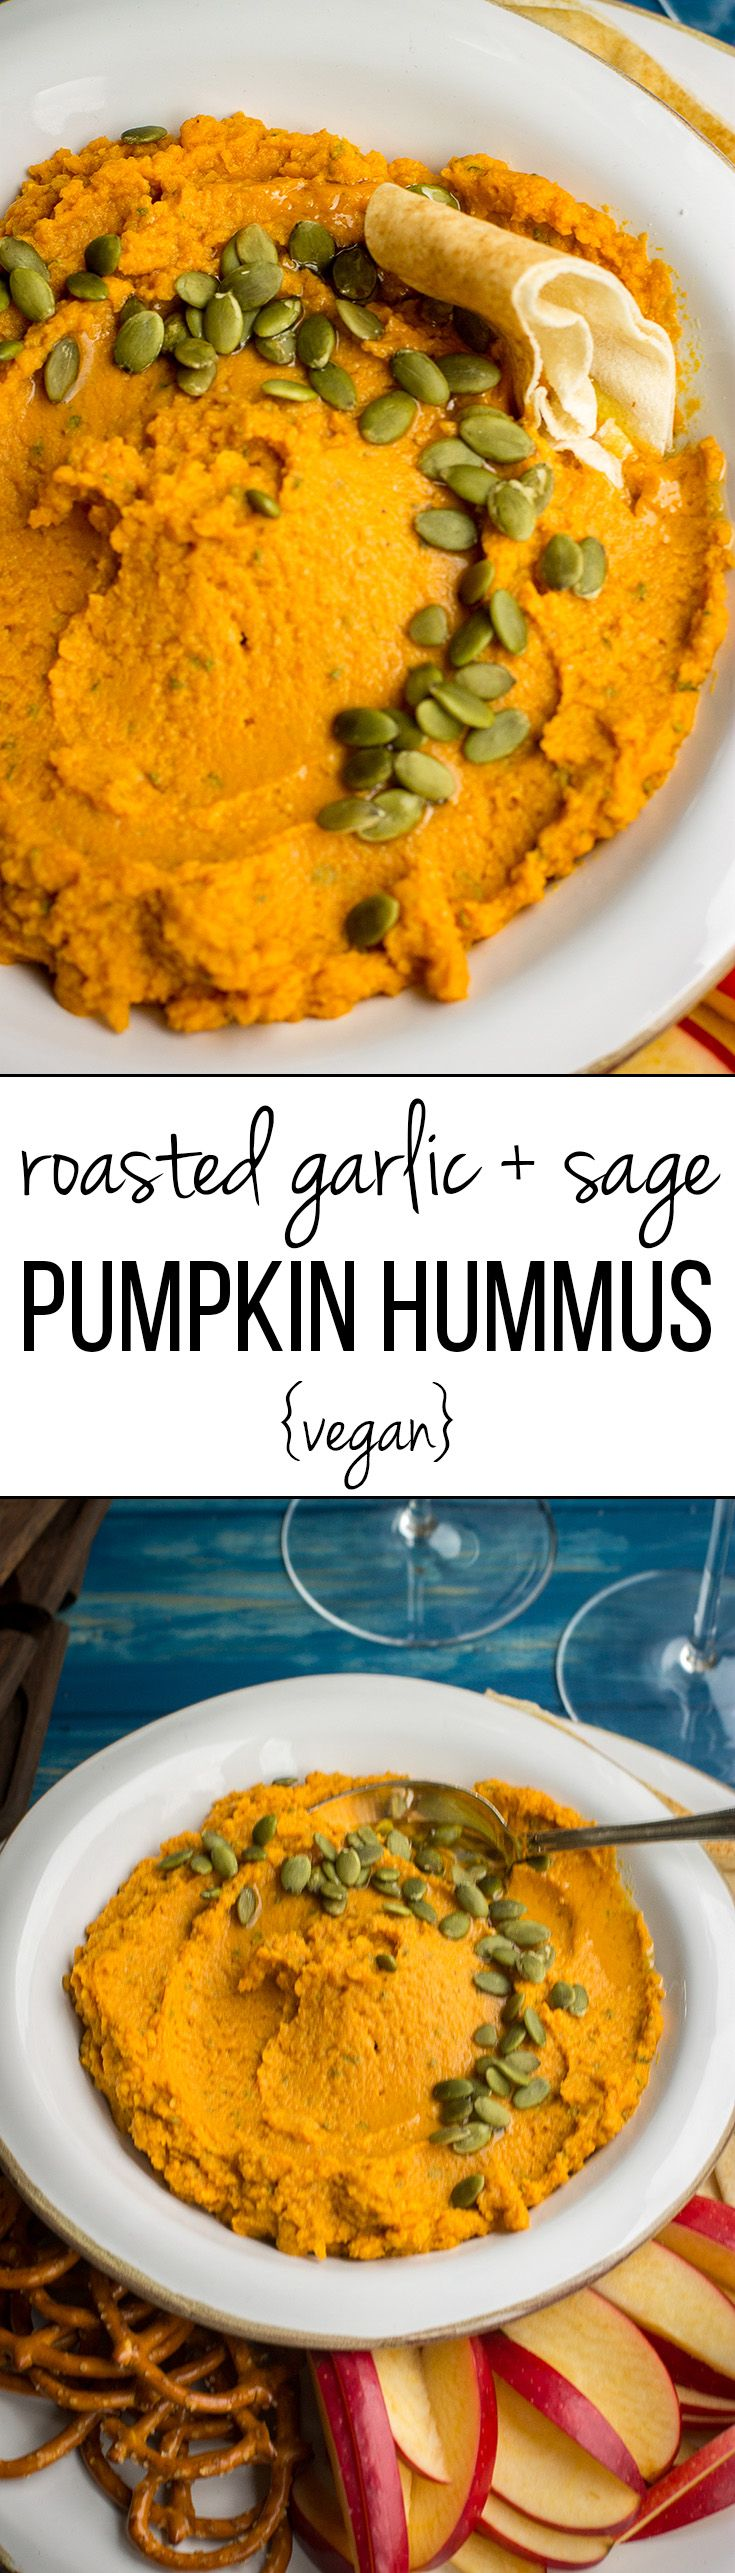 Roasted garlic sage pumpkin hummus | A fast, easy, delicious, vegan fall dip, perfect for parties, snacks, or appetizers! #pumpkinrecipes #partyfood #thanksgiving #vegan